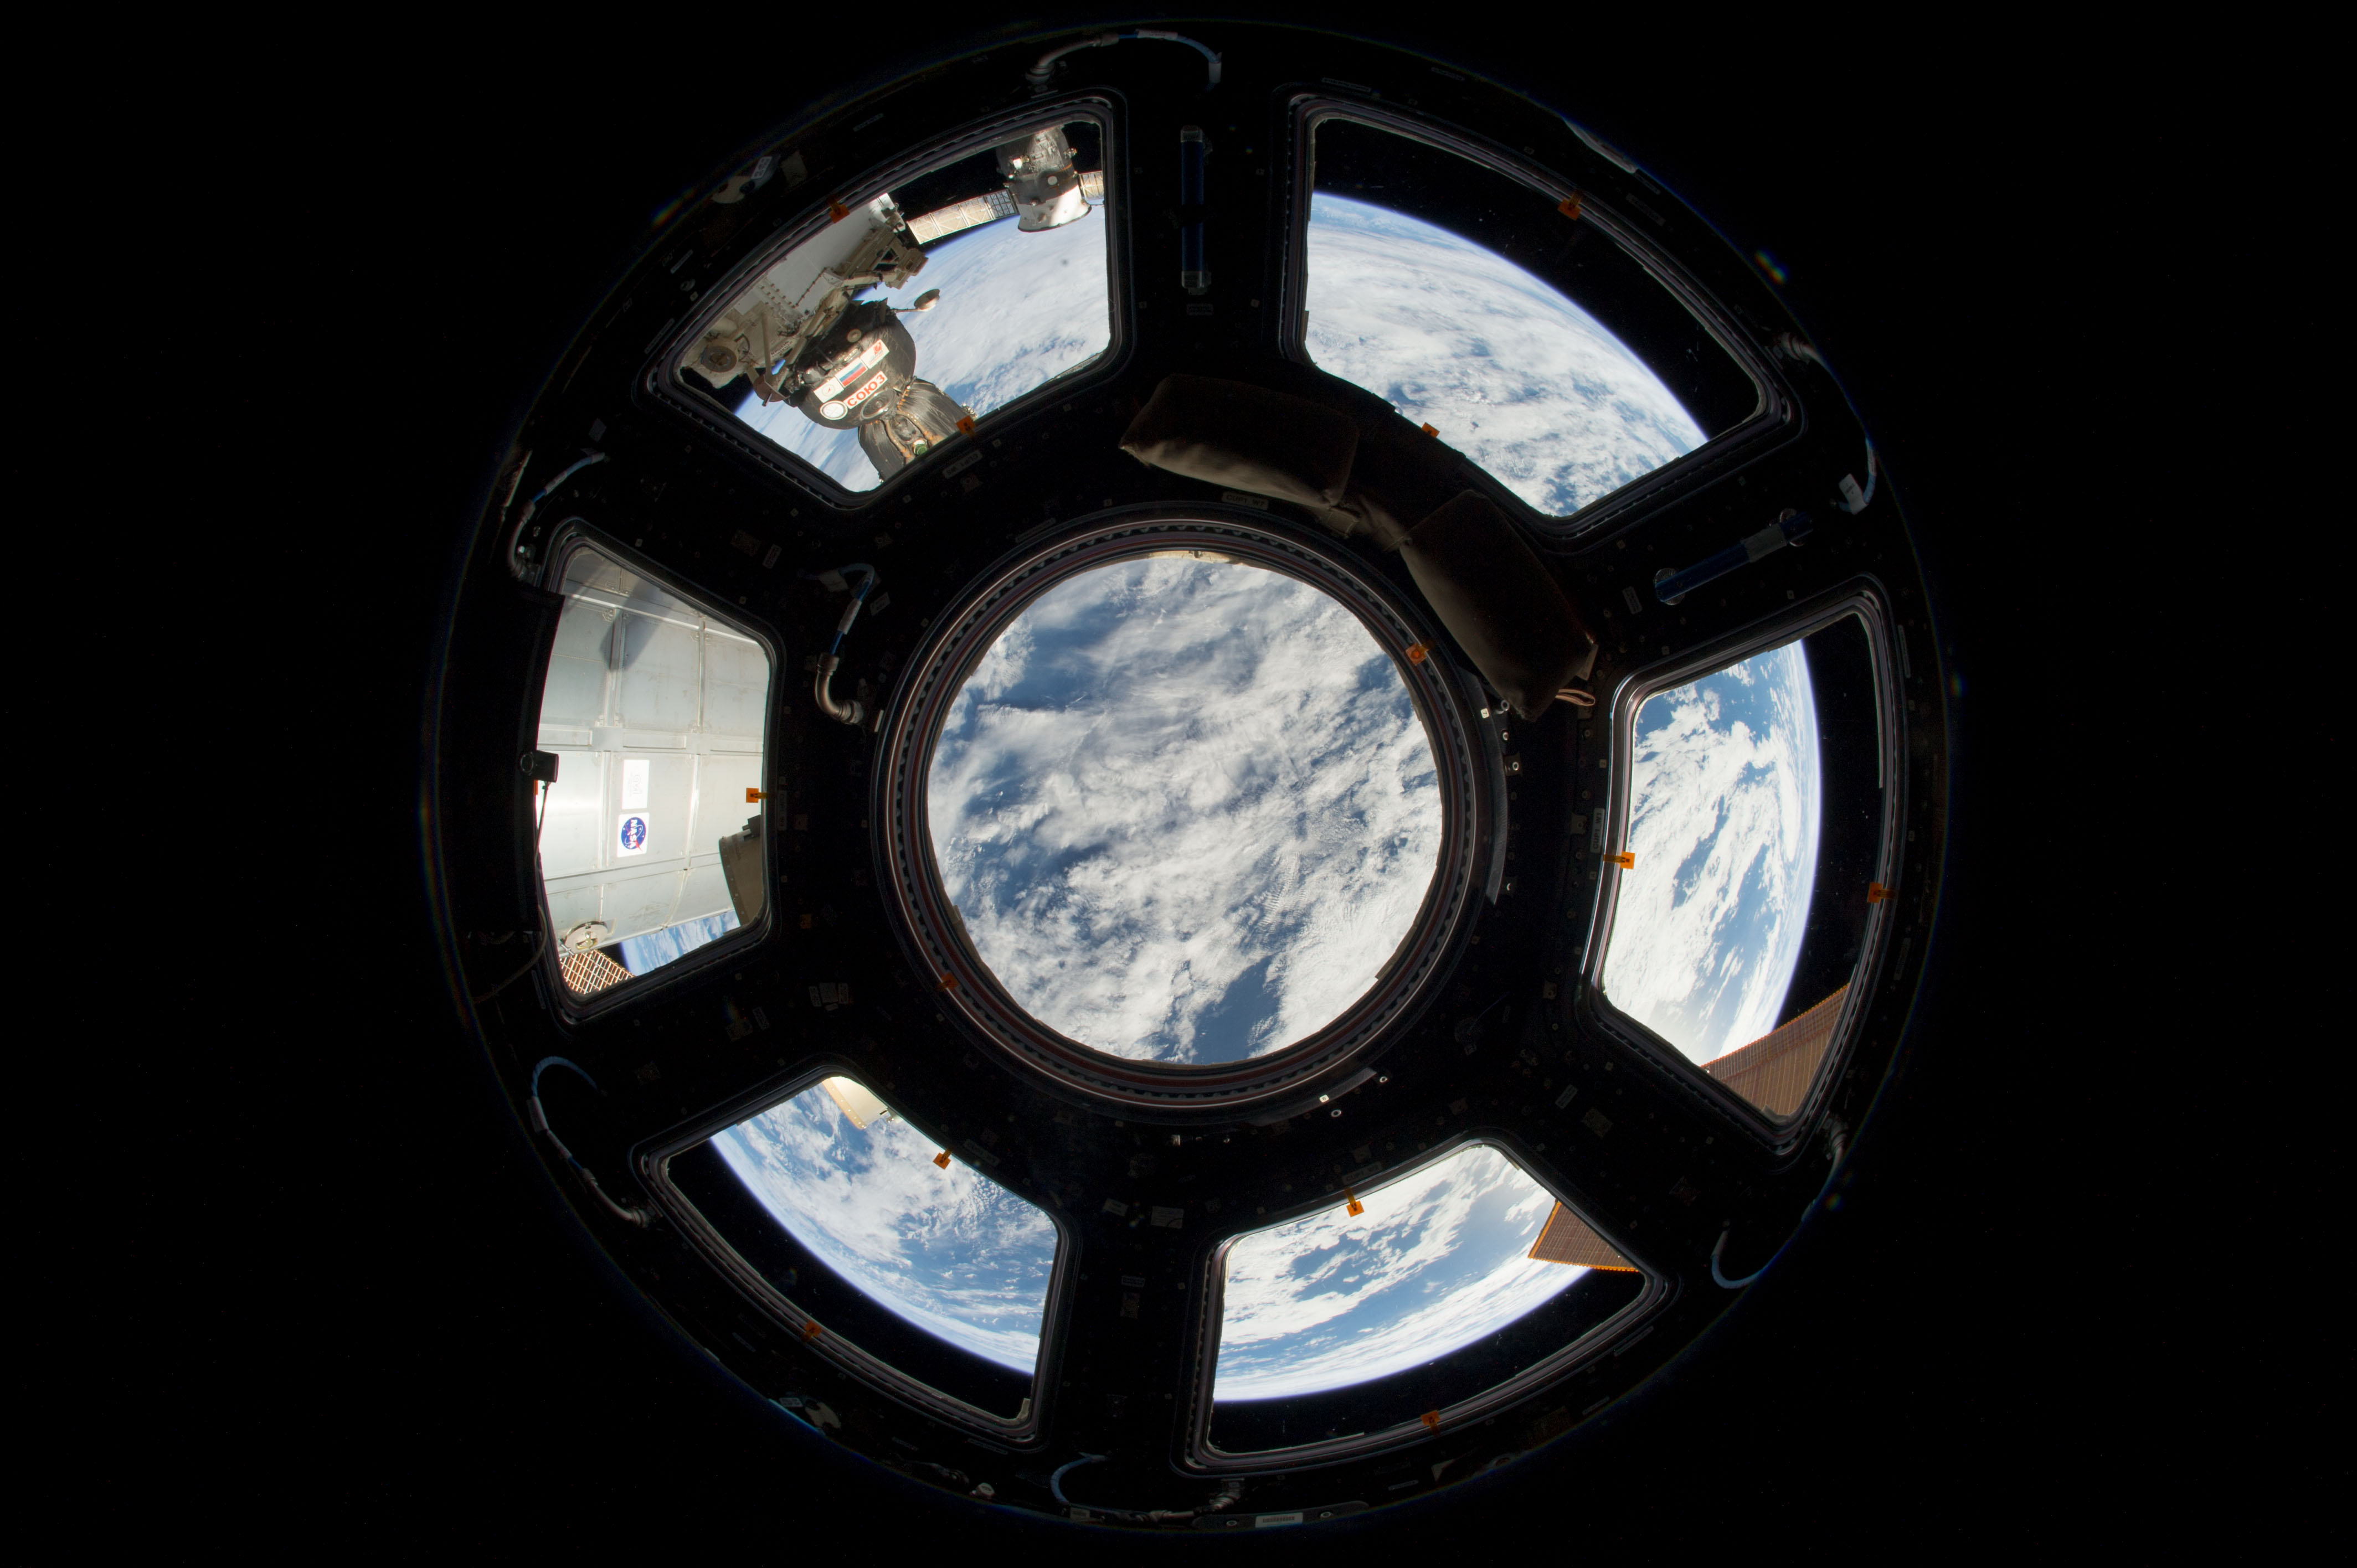 Iss Wallpaper Hd Space In Images 2013 07 A Window On The World